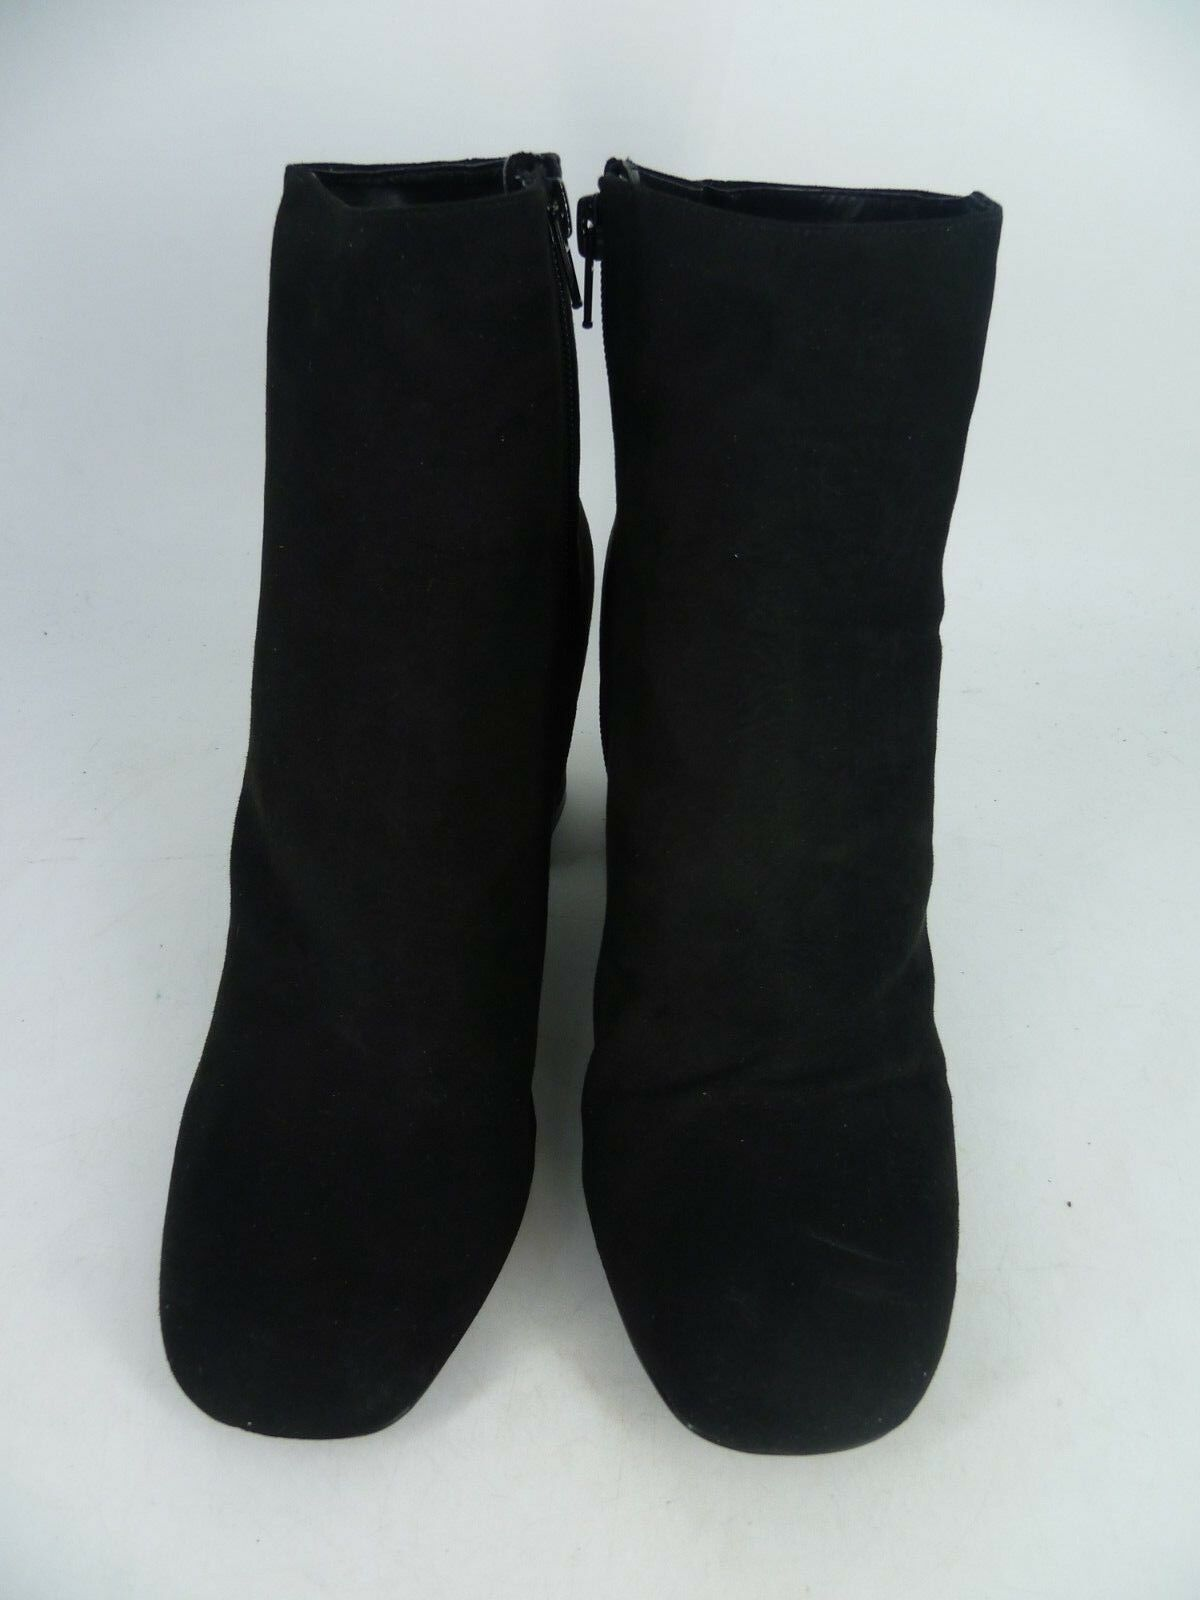 Oasis Oasis Oasis ladies Zip Up Ankle bottes UK 7 EU 40 LN182 ZZ 06 428cc8